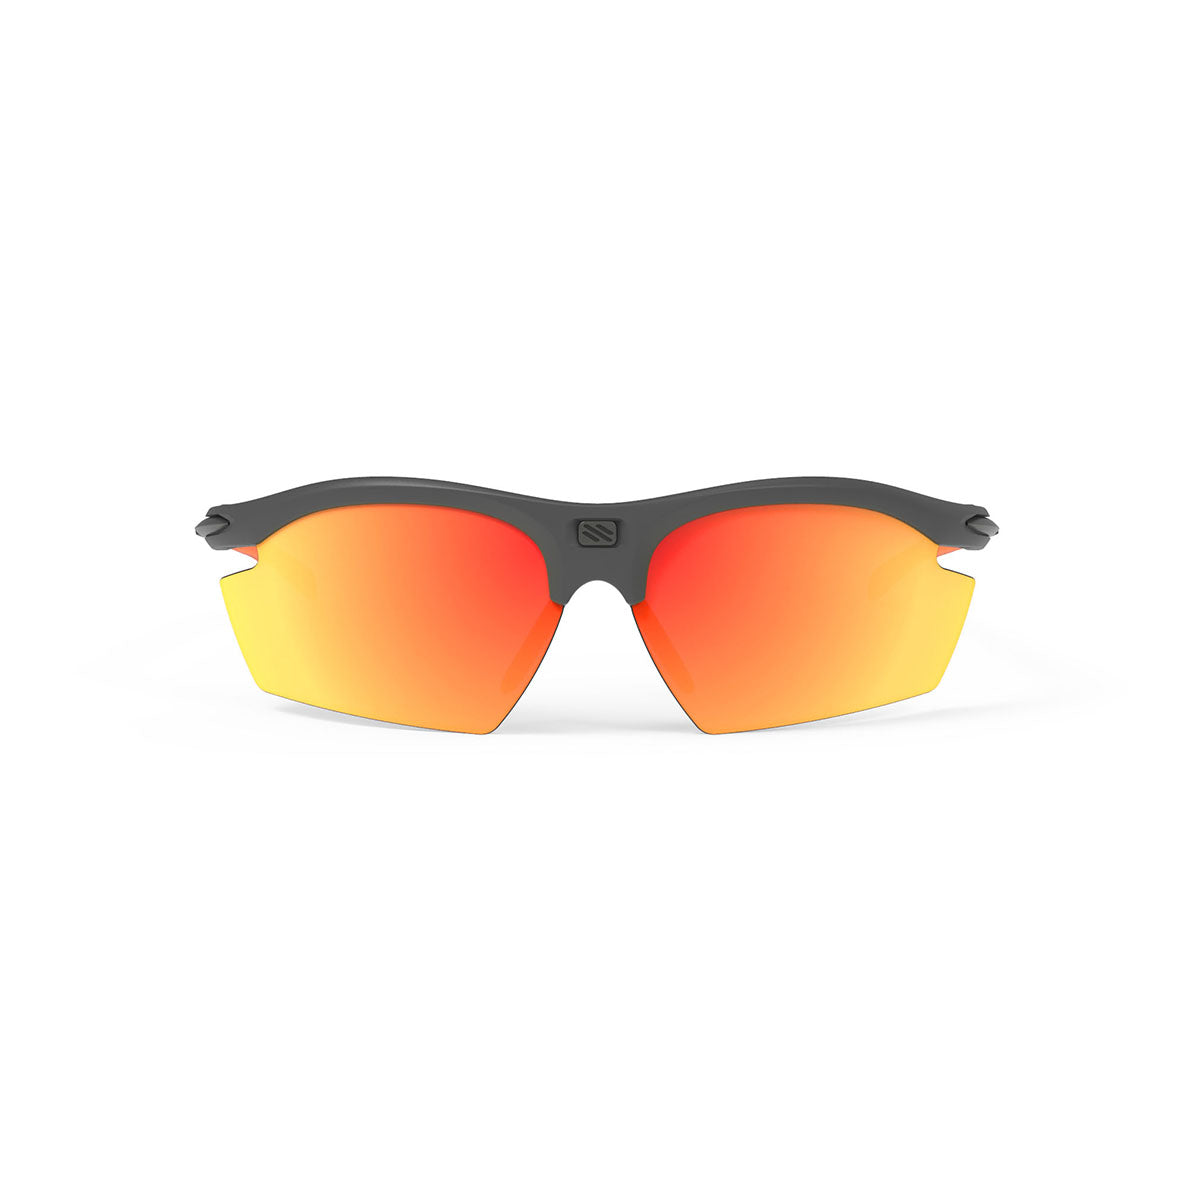 Rudy Project - Rydon - frame color: Graphite Multicolor Orange - lens color: Multilaser Orange - photo angle: Front View Variant Hover Image